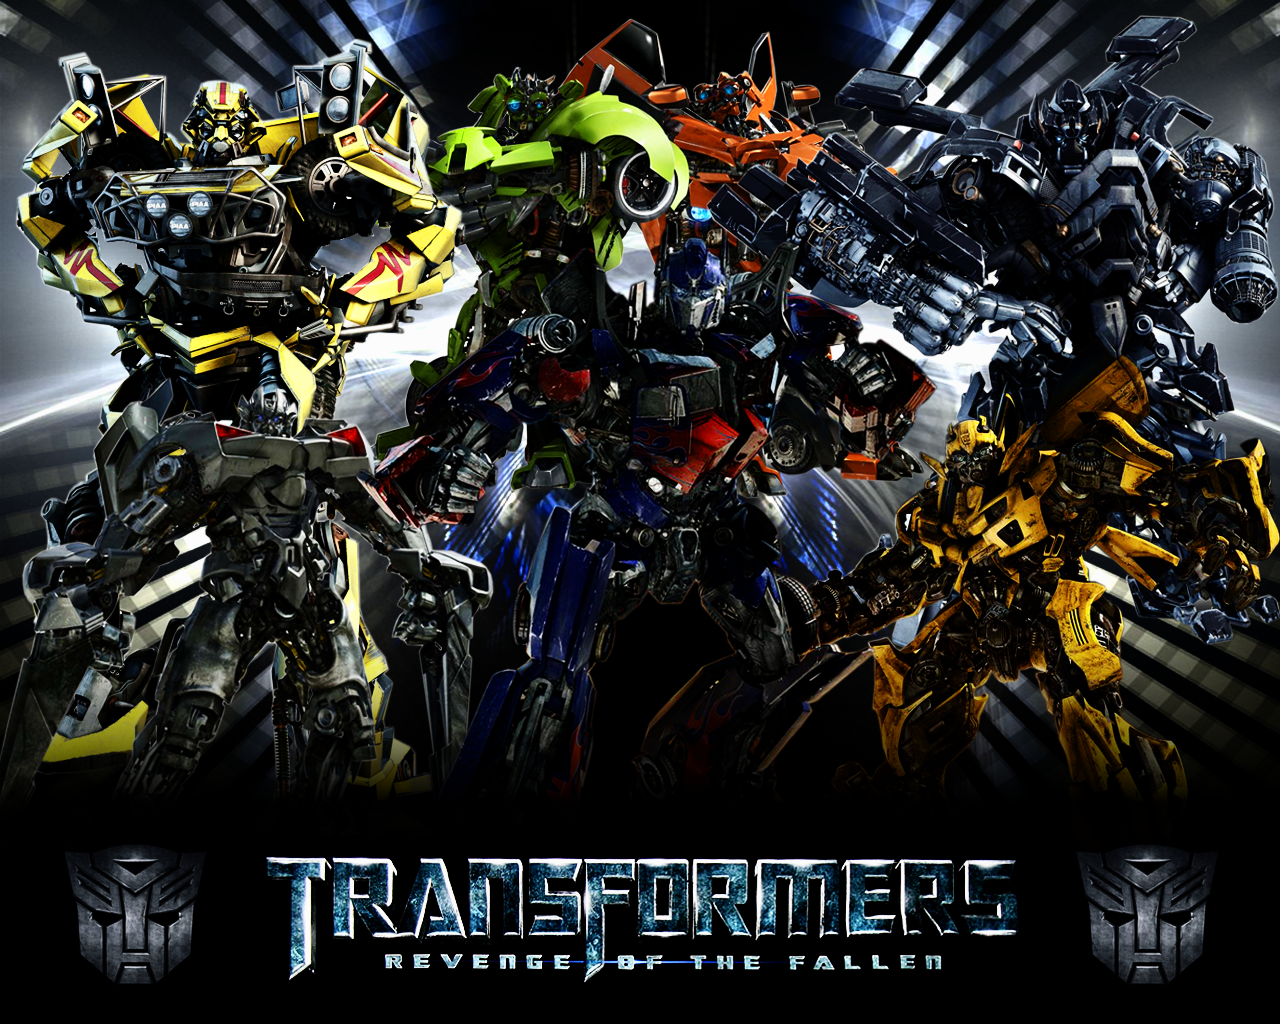 http://images3.wikia.nocookie.net/__cb20110831141214/imperioomit/es/images/4/4d/Transformers.png